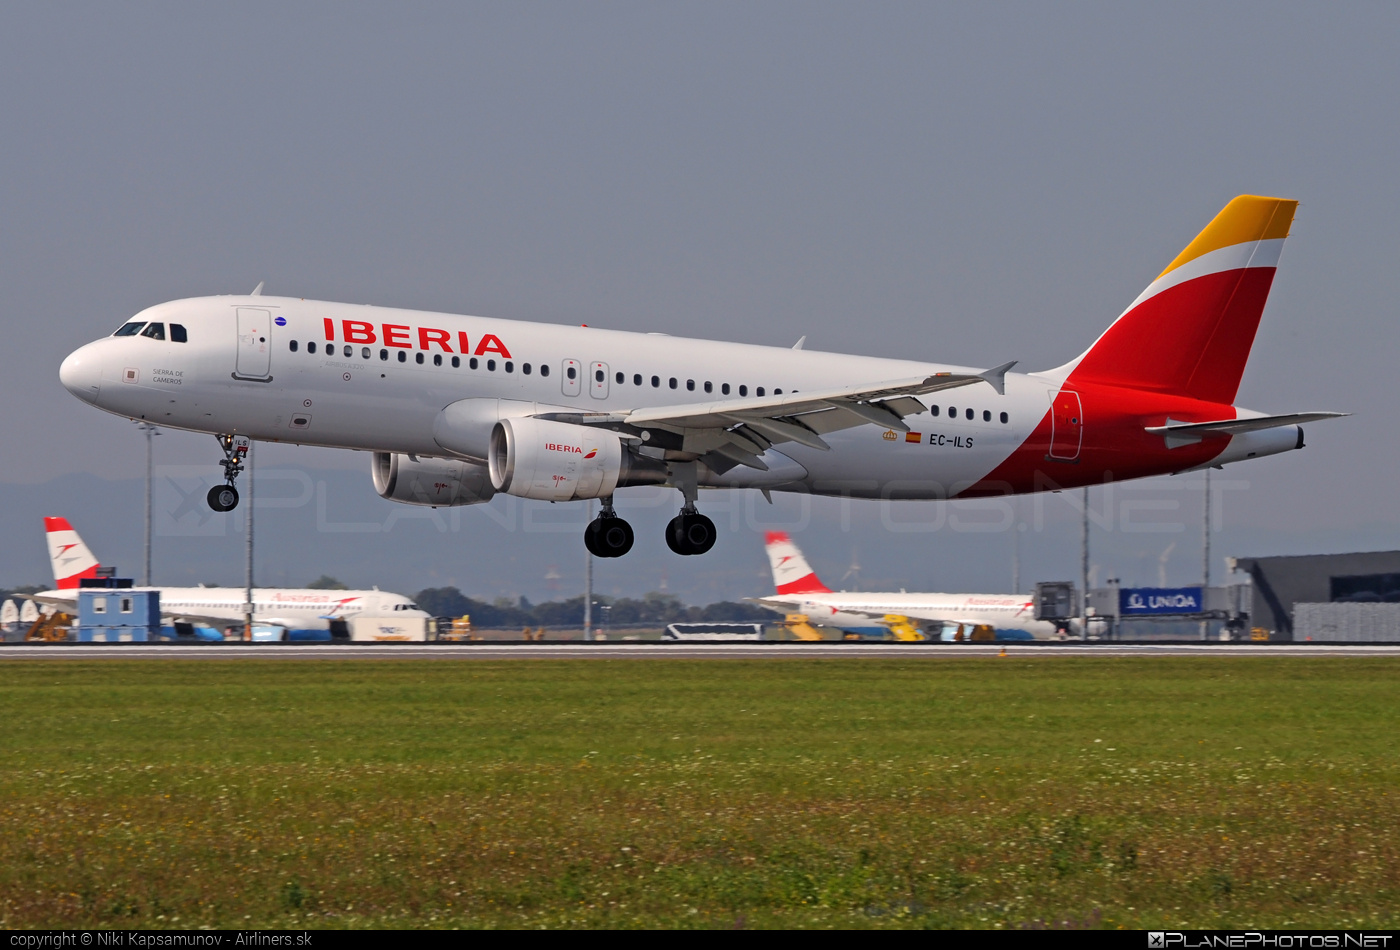 Airbus A320-214 - EC-ILS operated by Iberia #a320 #a320family #airbus #airbus320 #iberia